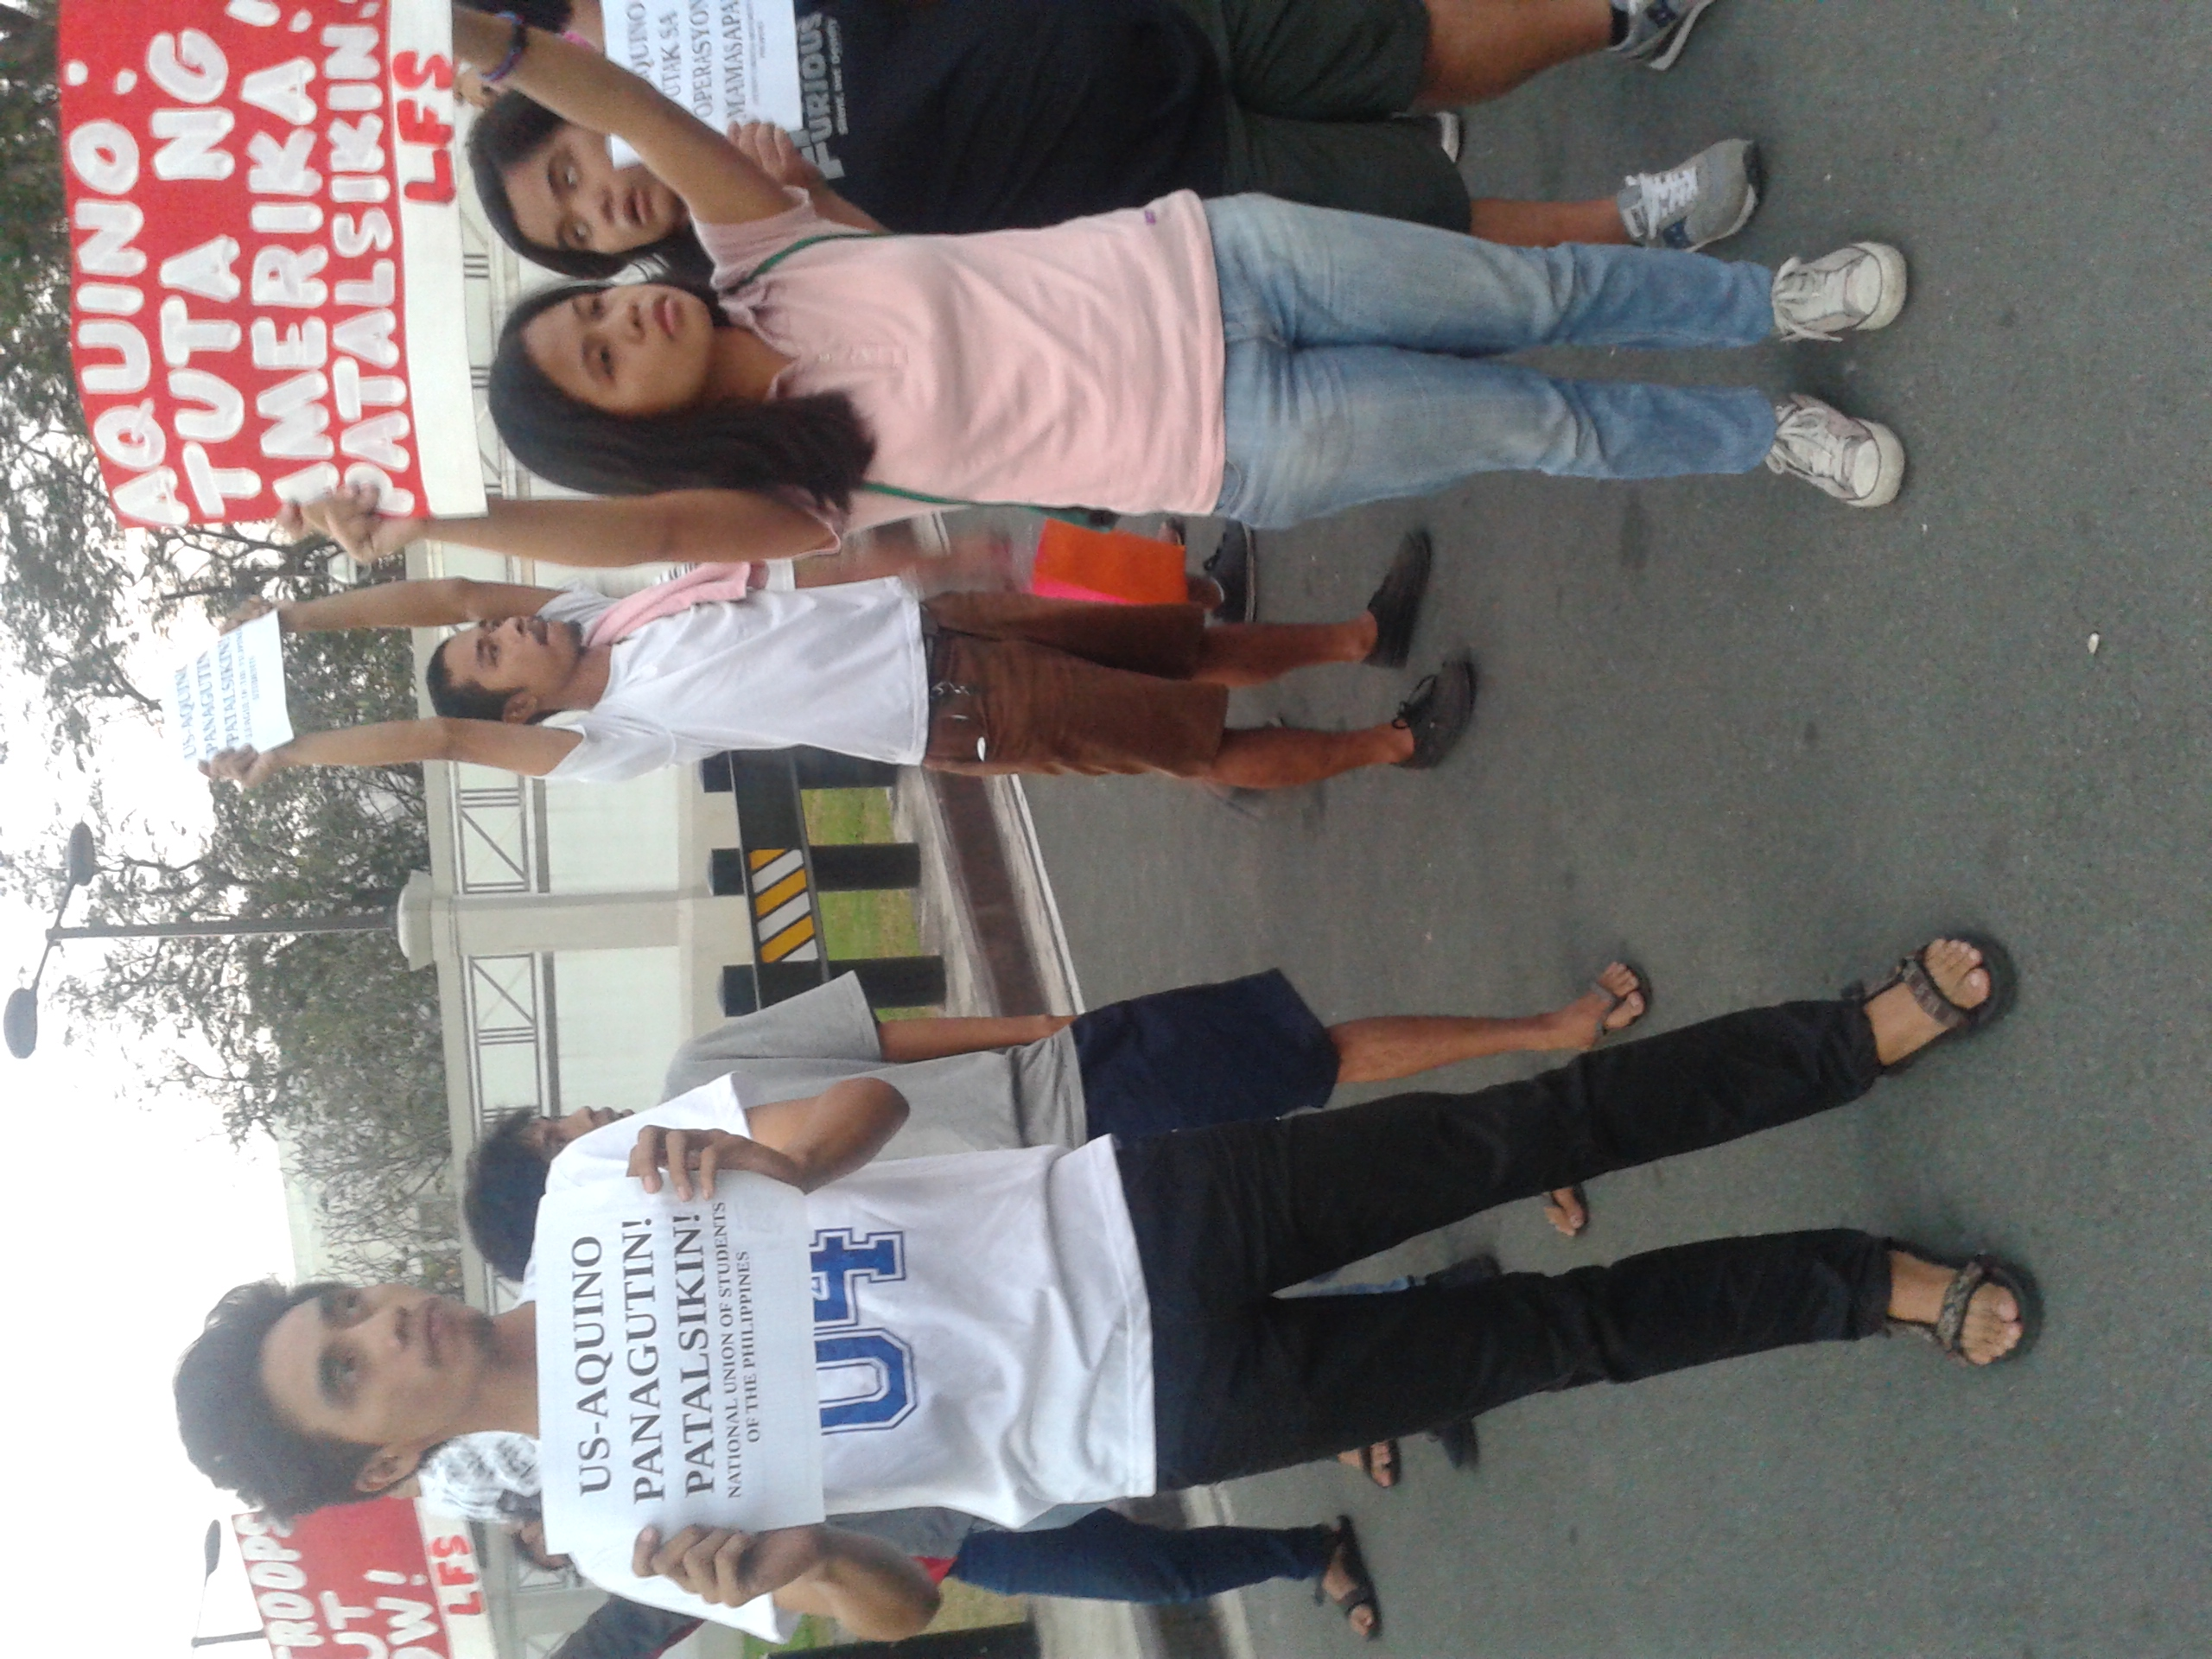 Youth protesters in front of the US embassy call for accountability of Pres. Aquino and US government (Photo courtesy of LFS)